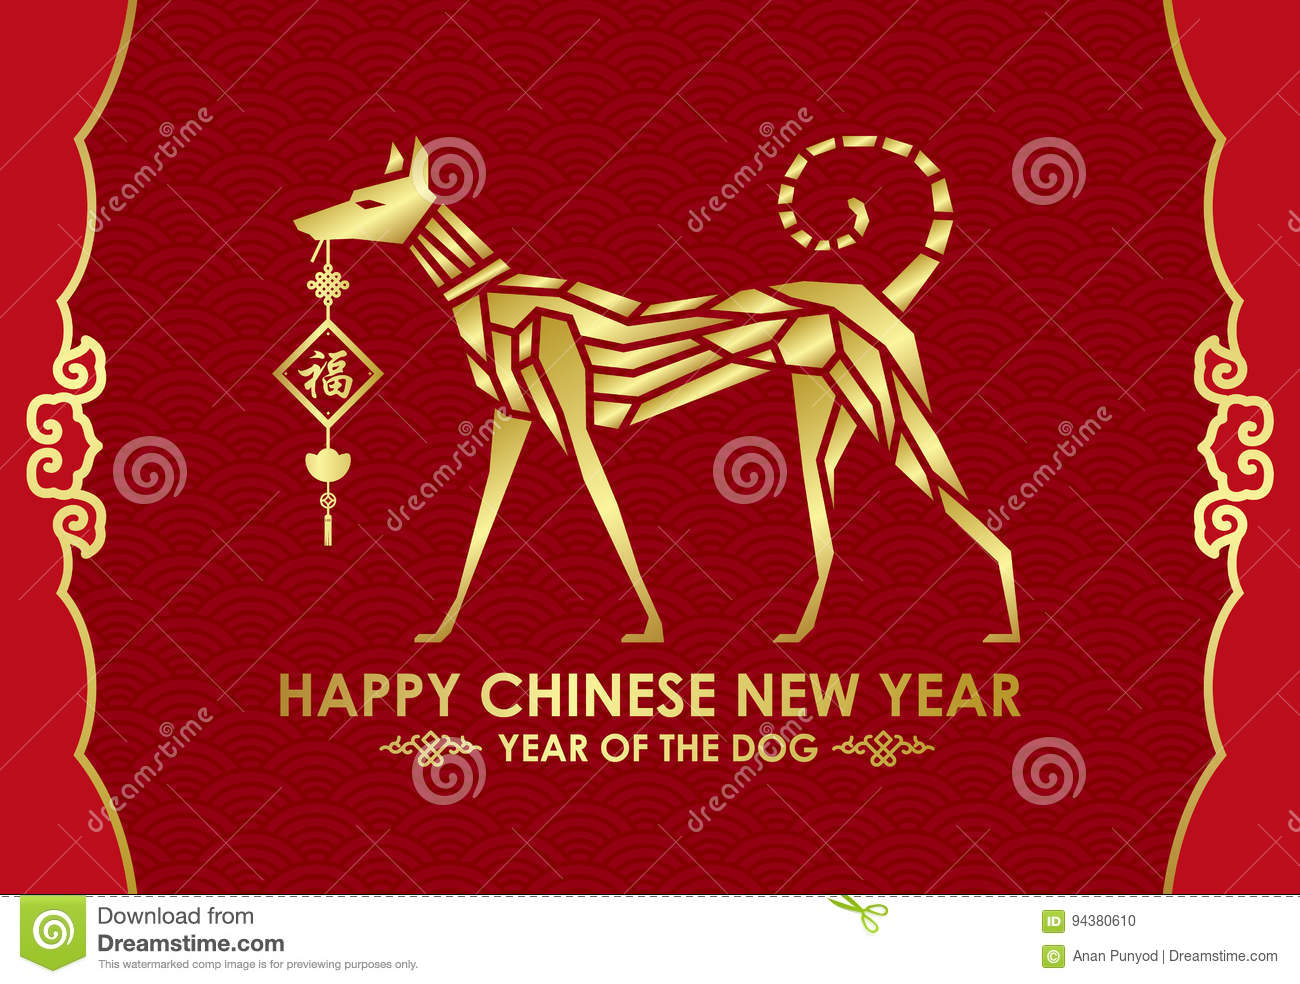 Happy Chinese new year 2018 card with Gold Dog abstract on red background vector design Chinese word mean Good Fortune